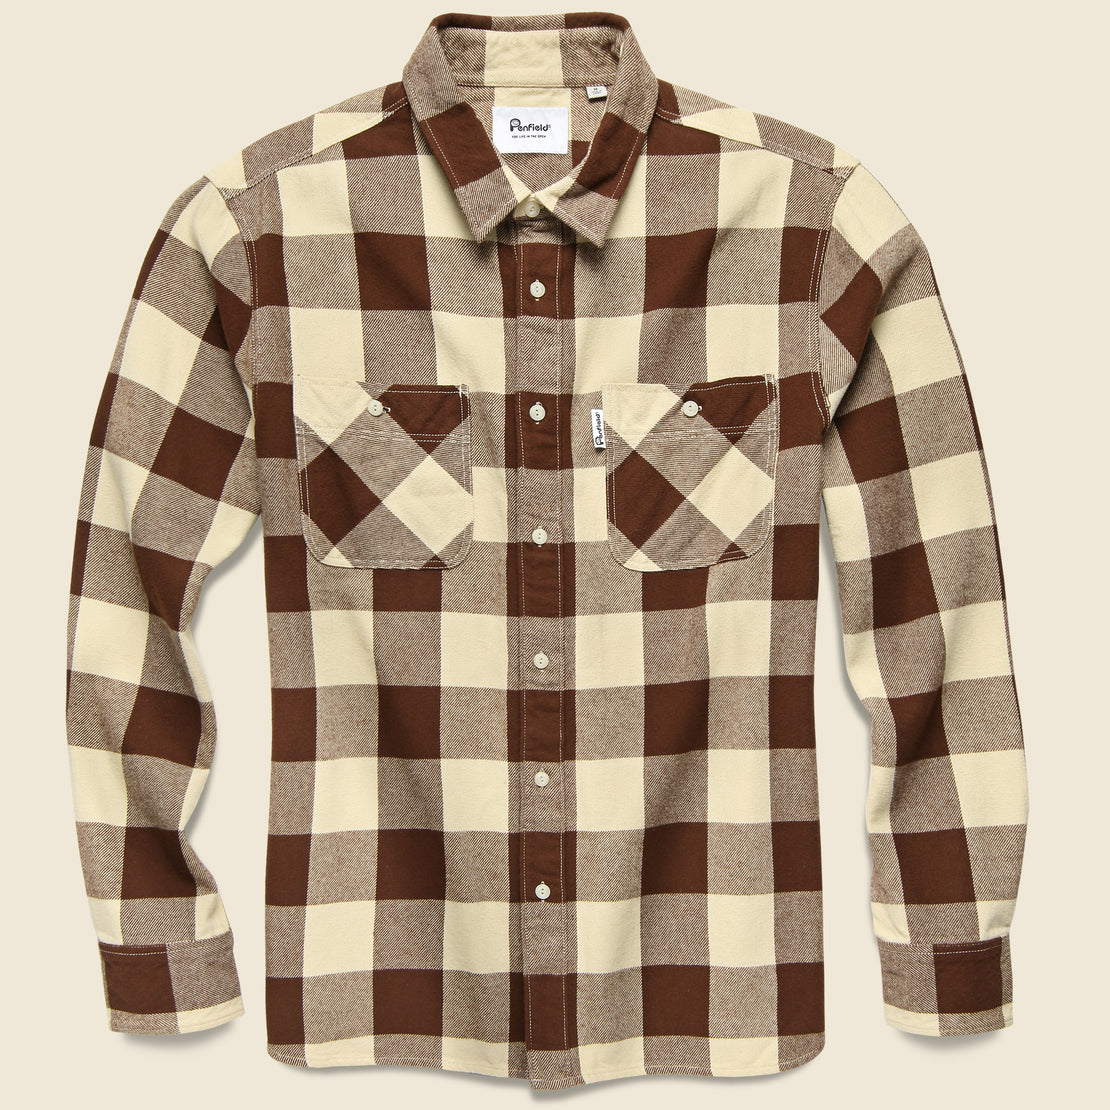 Penfield Blackmer Buffalo Shirt - Ecru